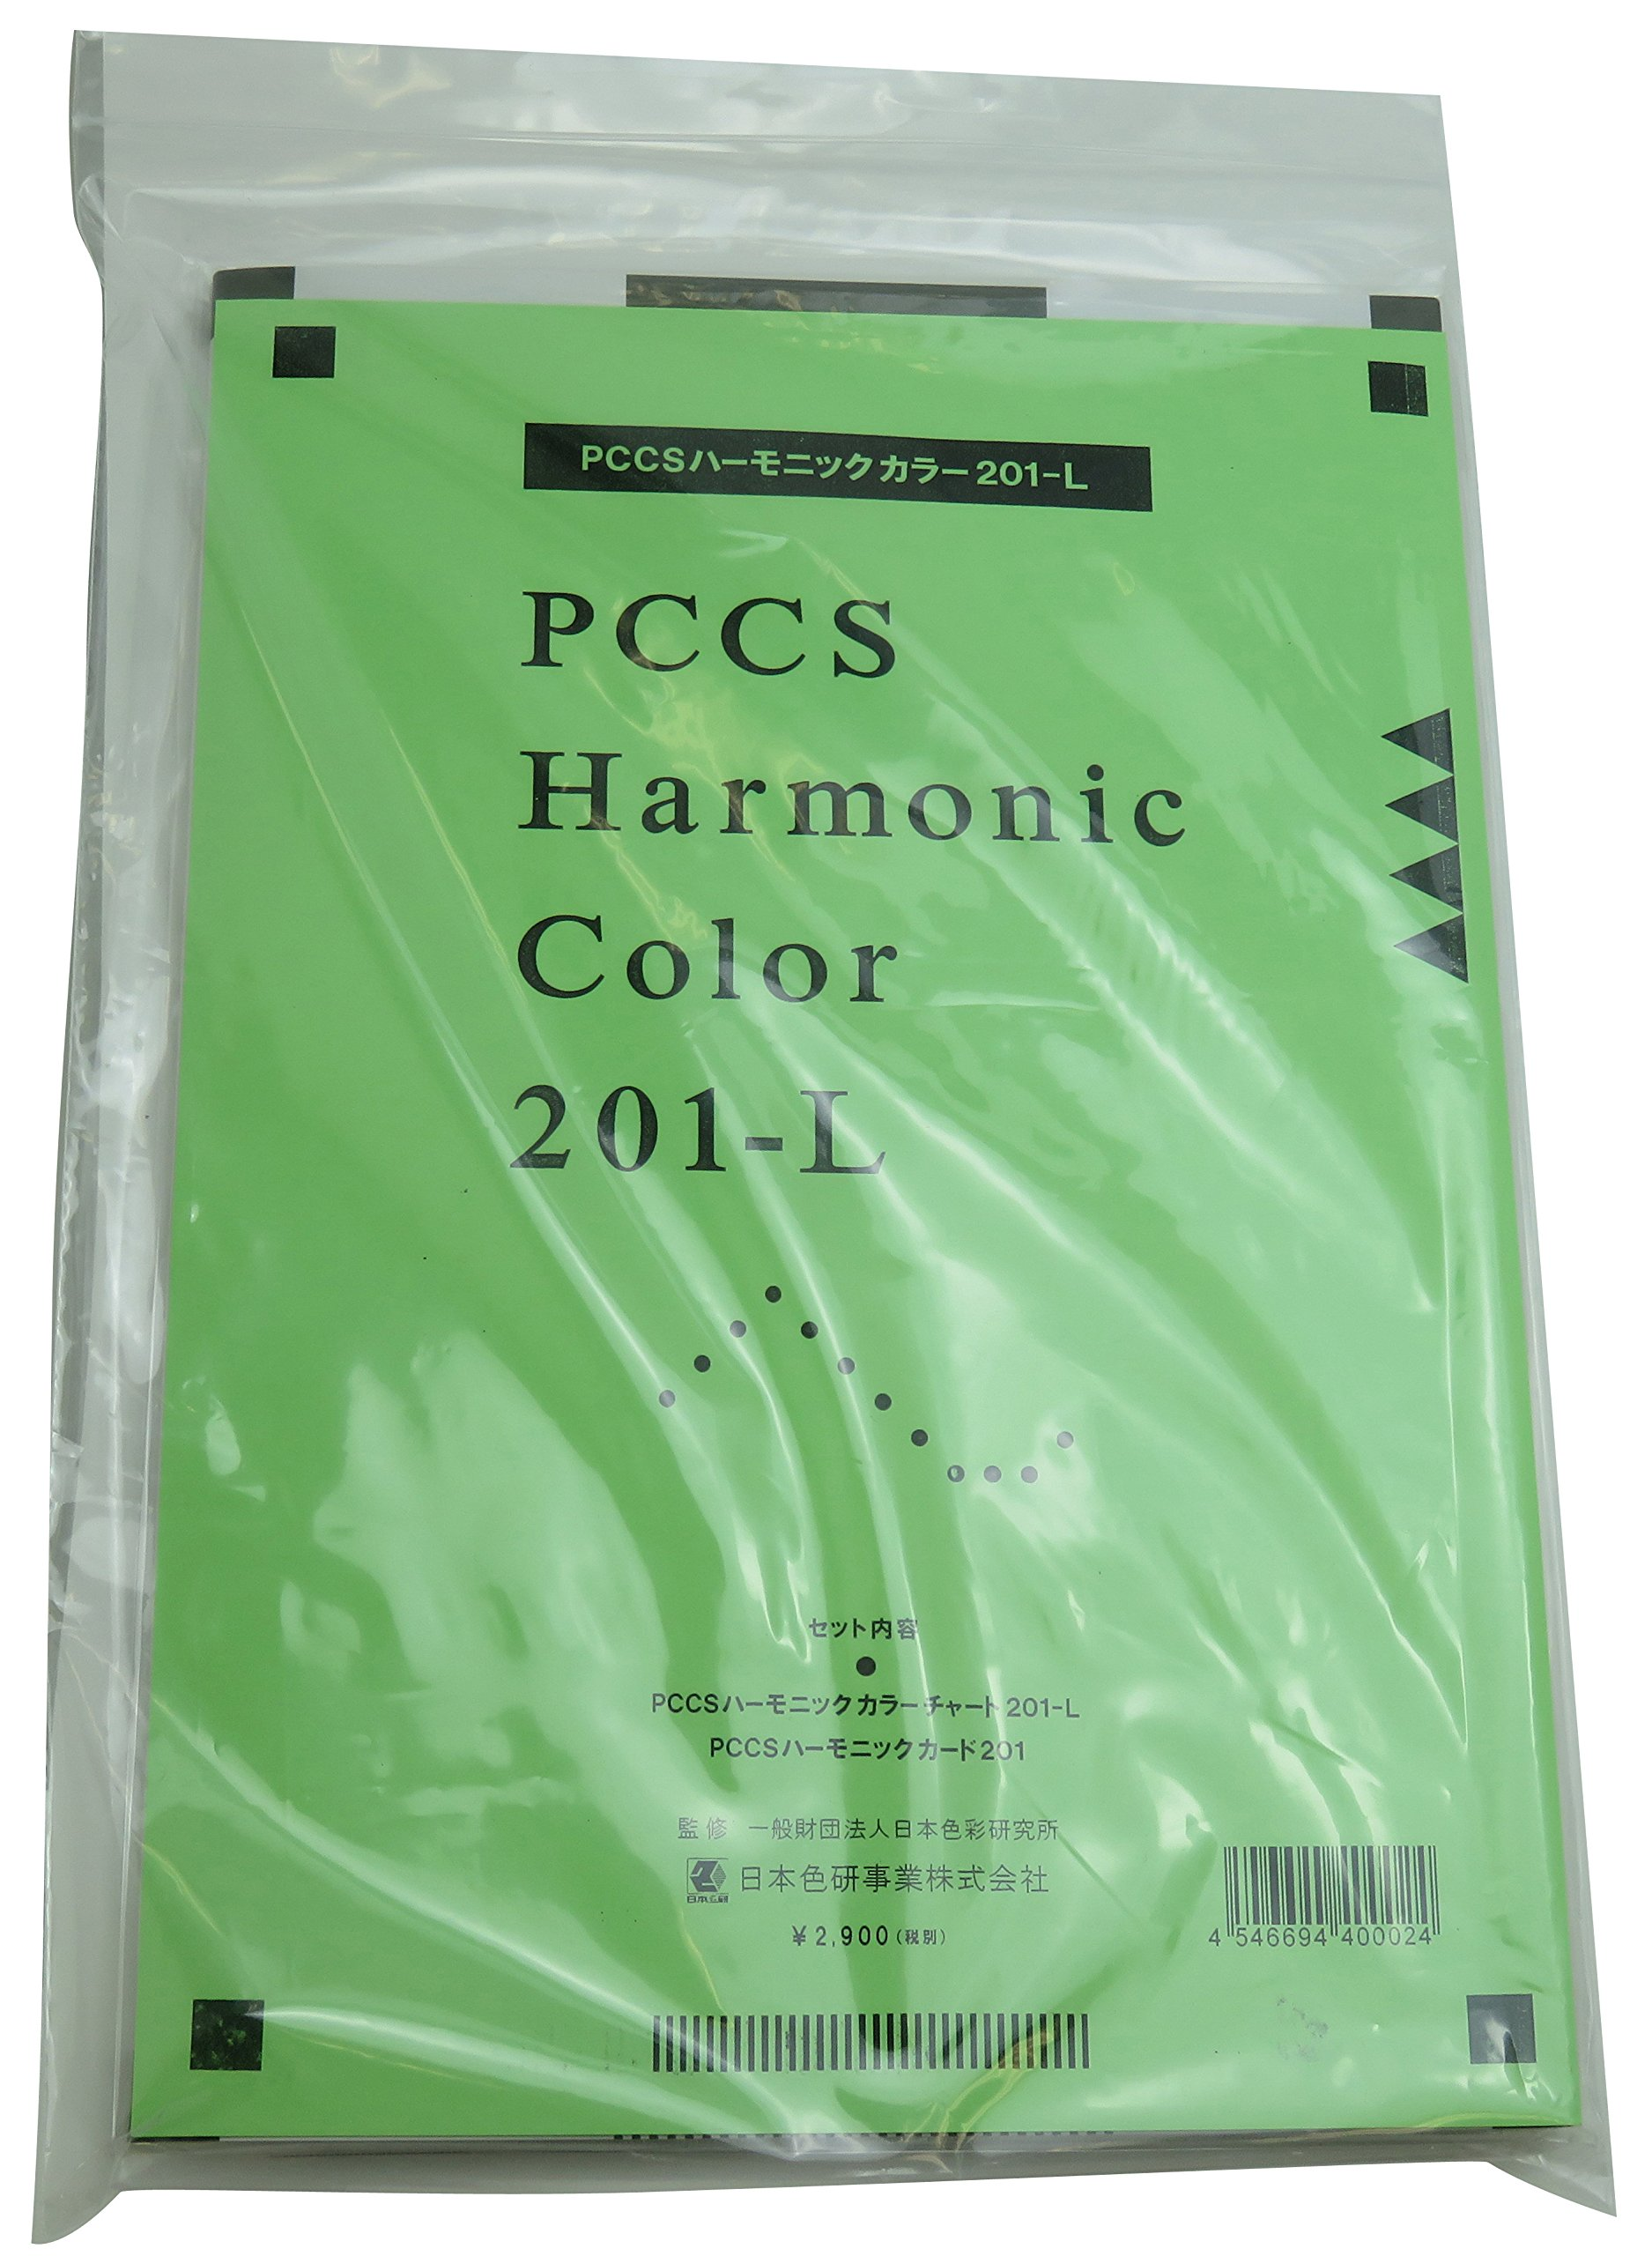 Japan Iroken PCCS harmonic color 201-L by Japan Iro-ken business